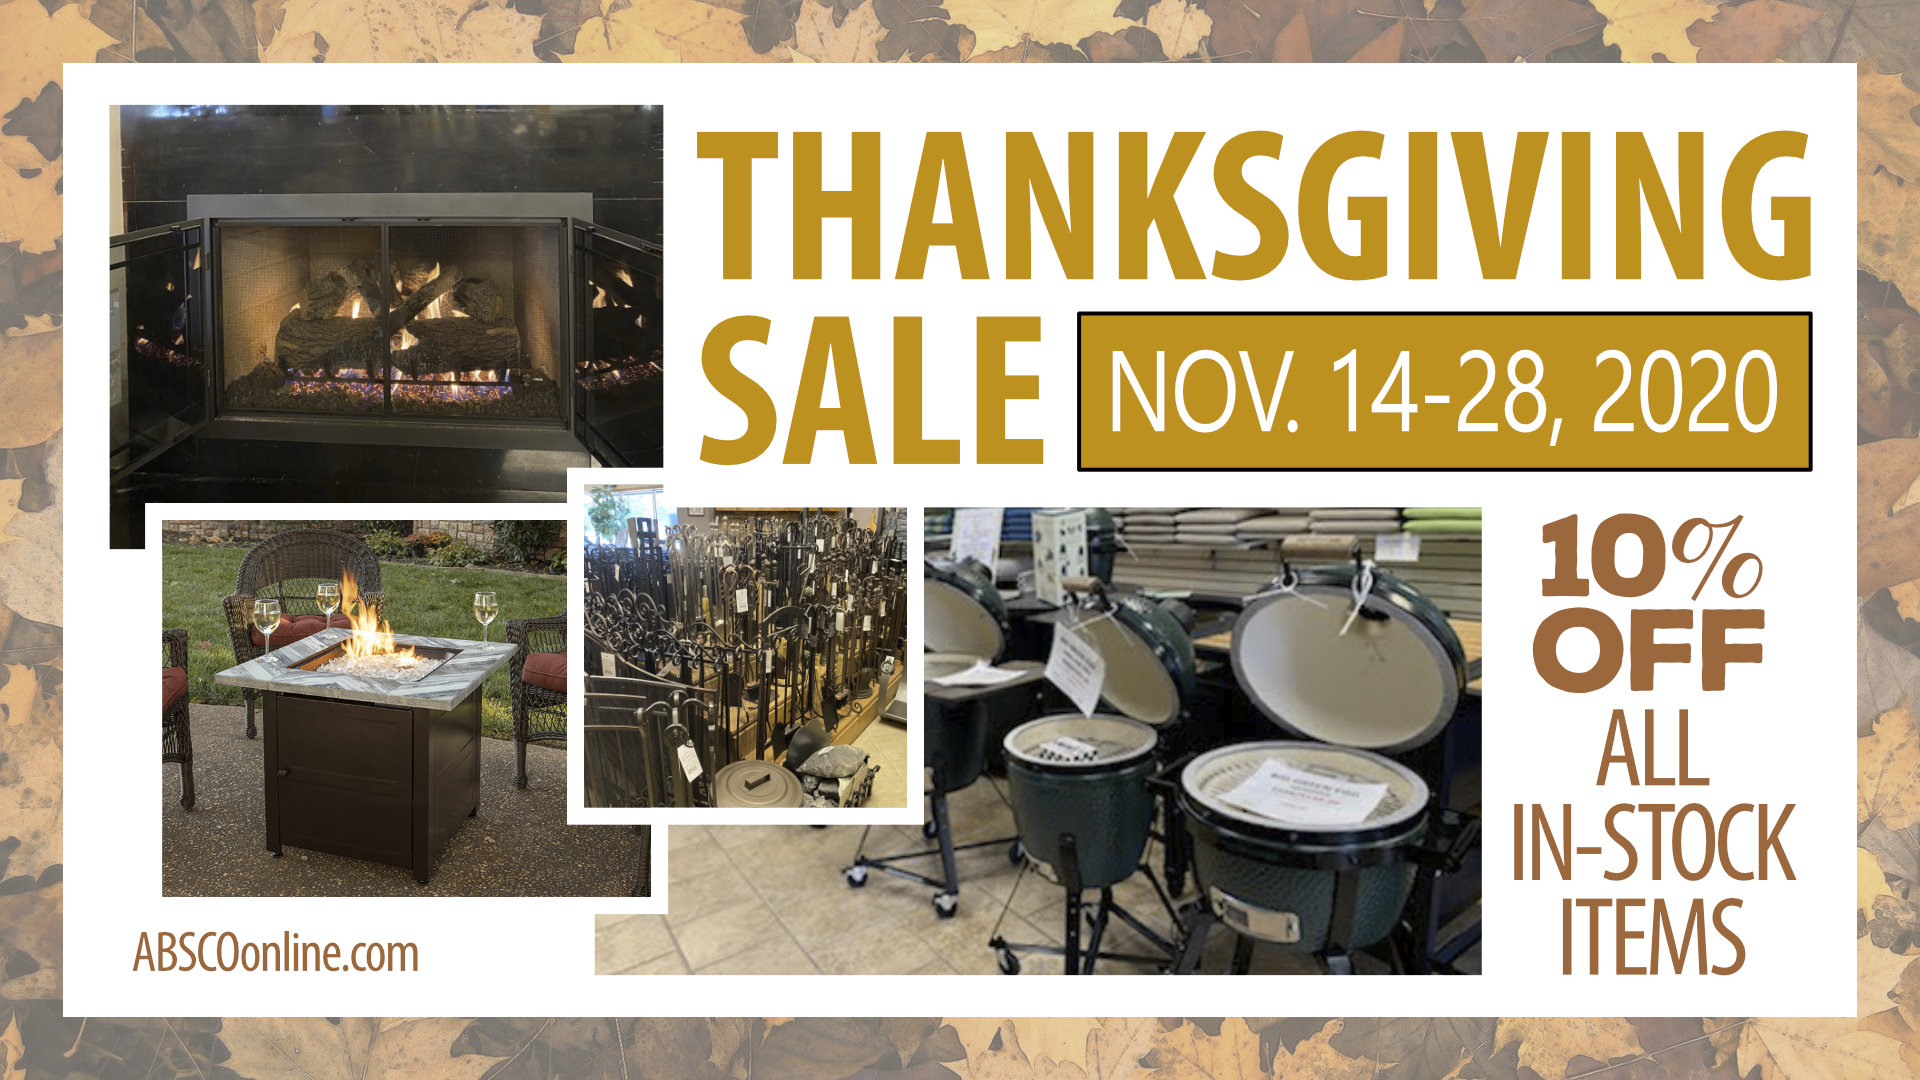 ABSCO - Thanksgiving Sale 2020 - Big Green Egg - Fireplaces, Fire Pits, Outdoor Furniture, and more!